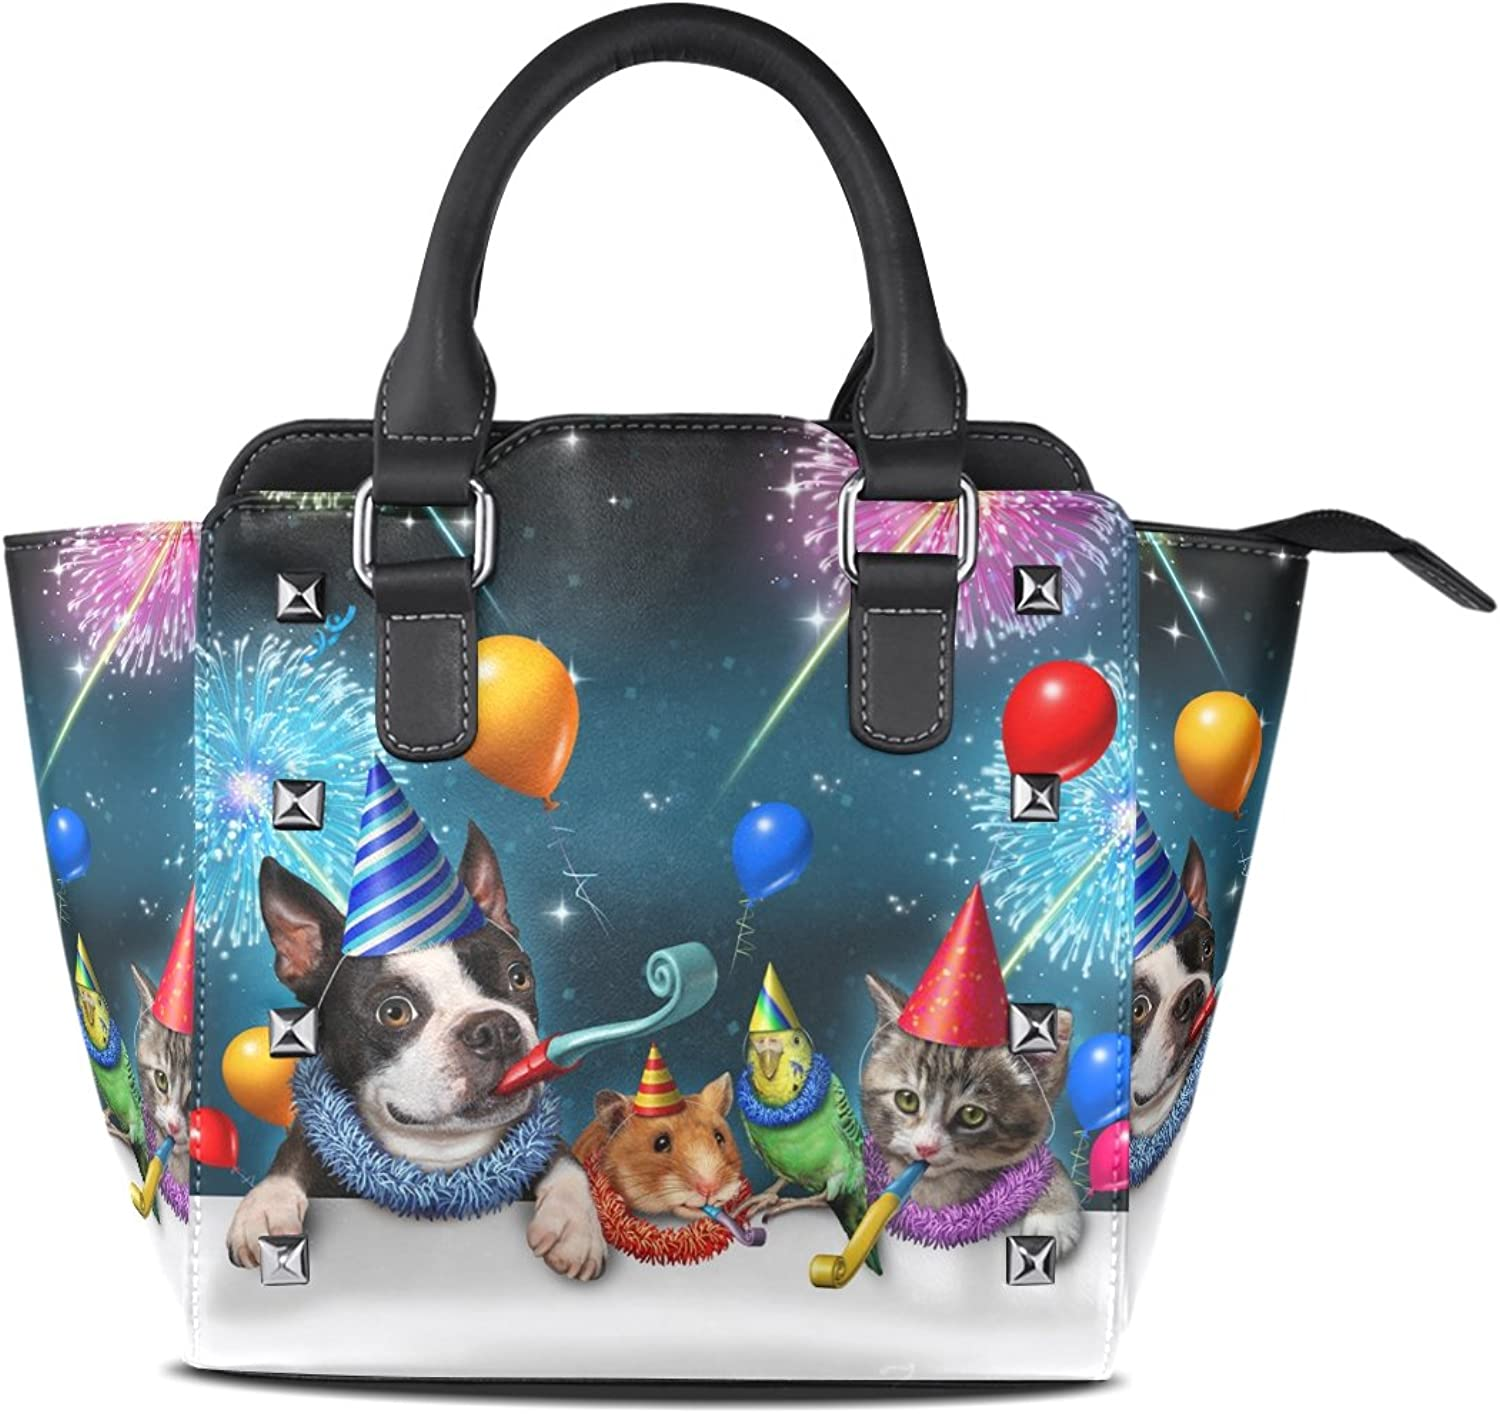 Sunlome New Year Cat Dog Parred Hamster Celebration Print Handbags Women's PU Leather Top-Handle Shoulder Bags